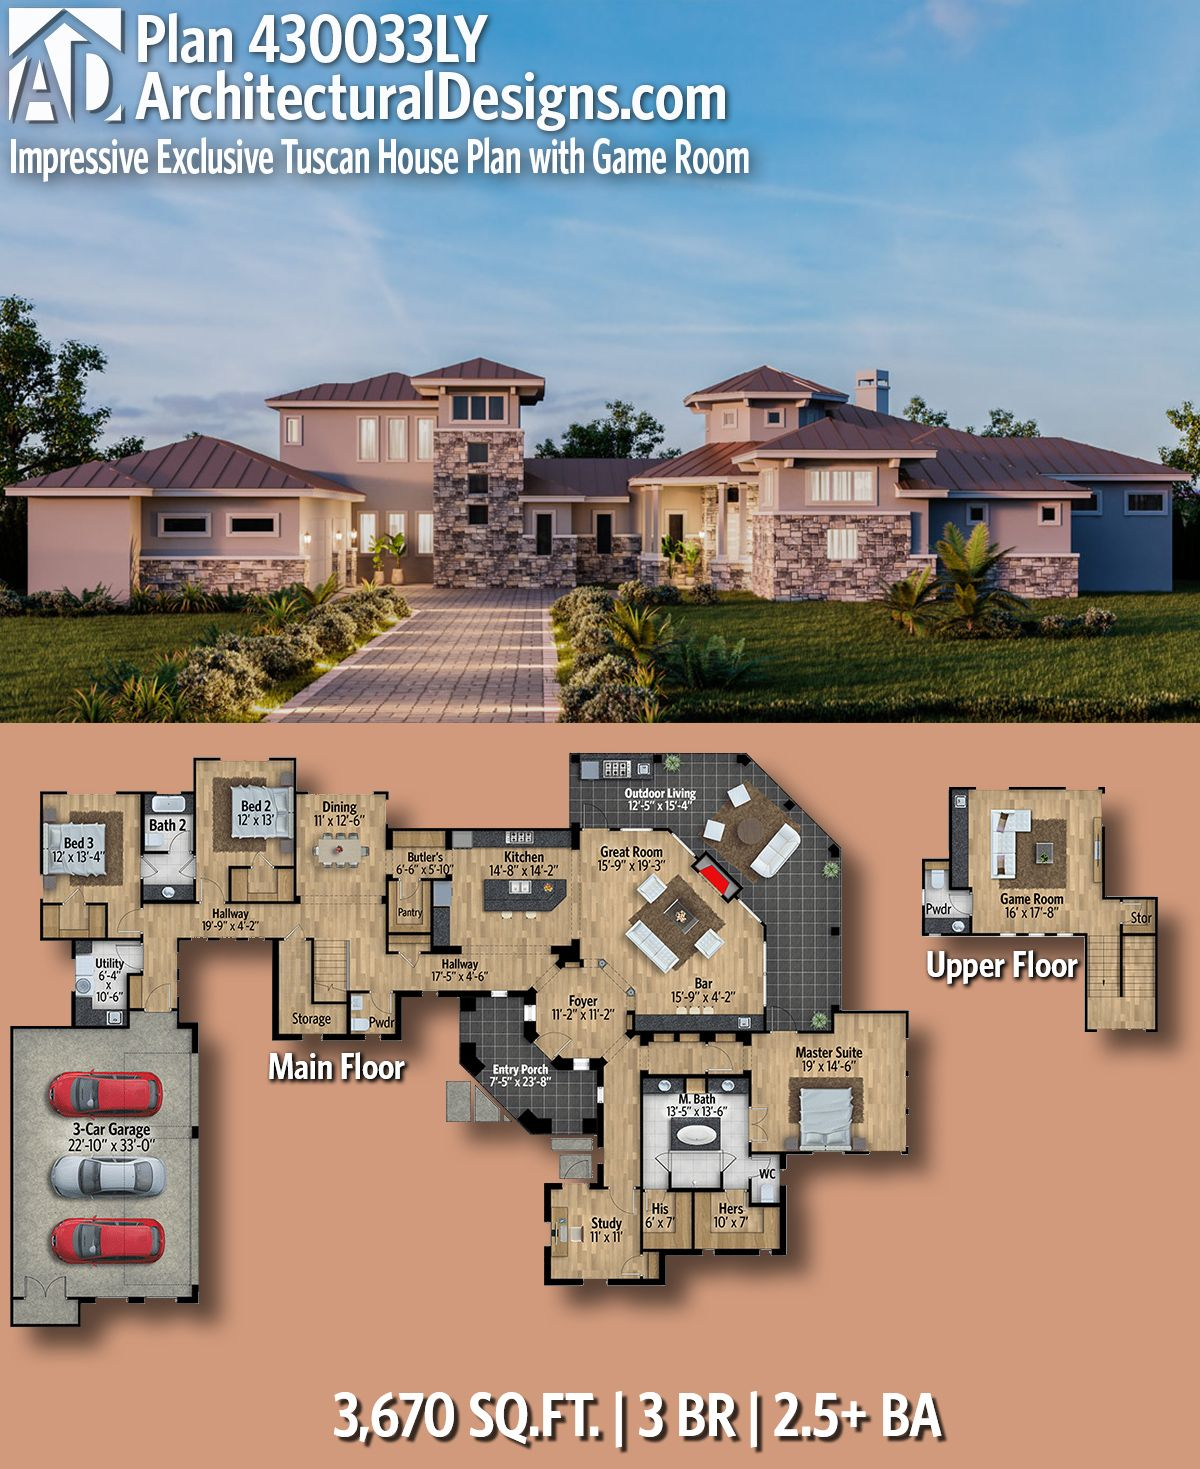 Plan 430033ly Impressive Exclusive Tuscan House Plan With Game Room Tuscan House Plans House Plans Mansion House Plans